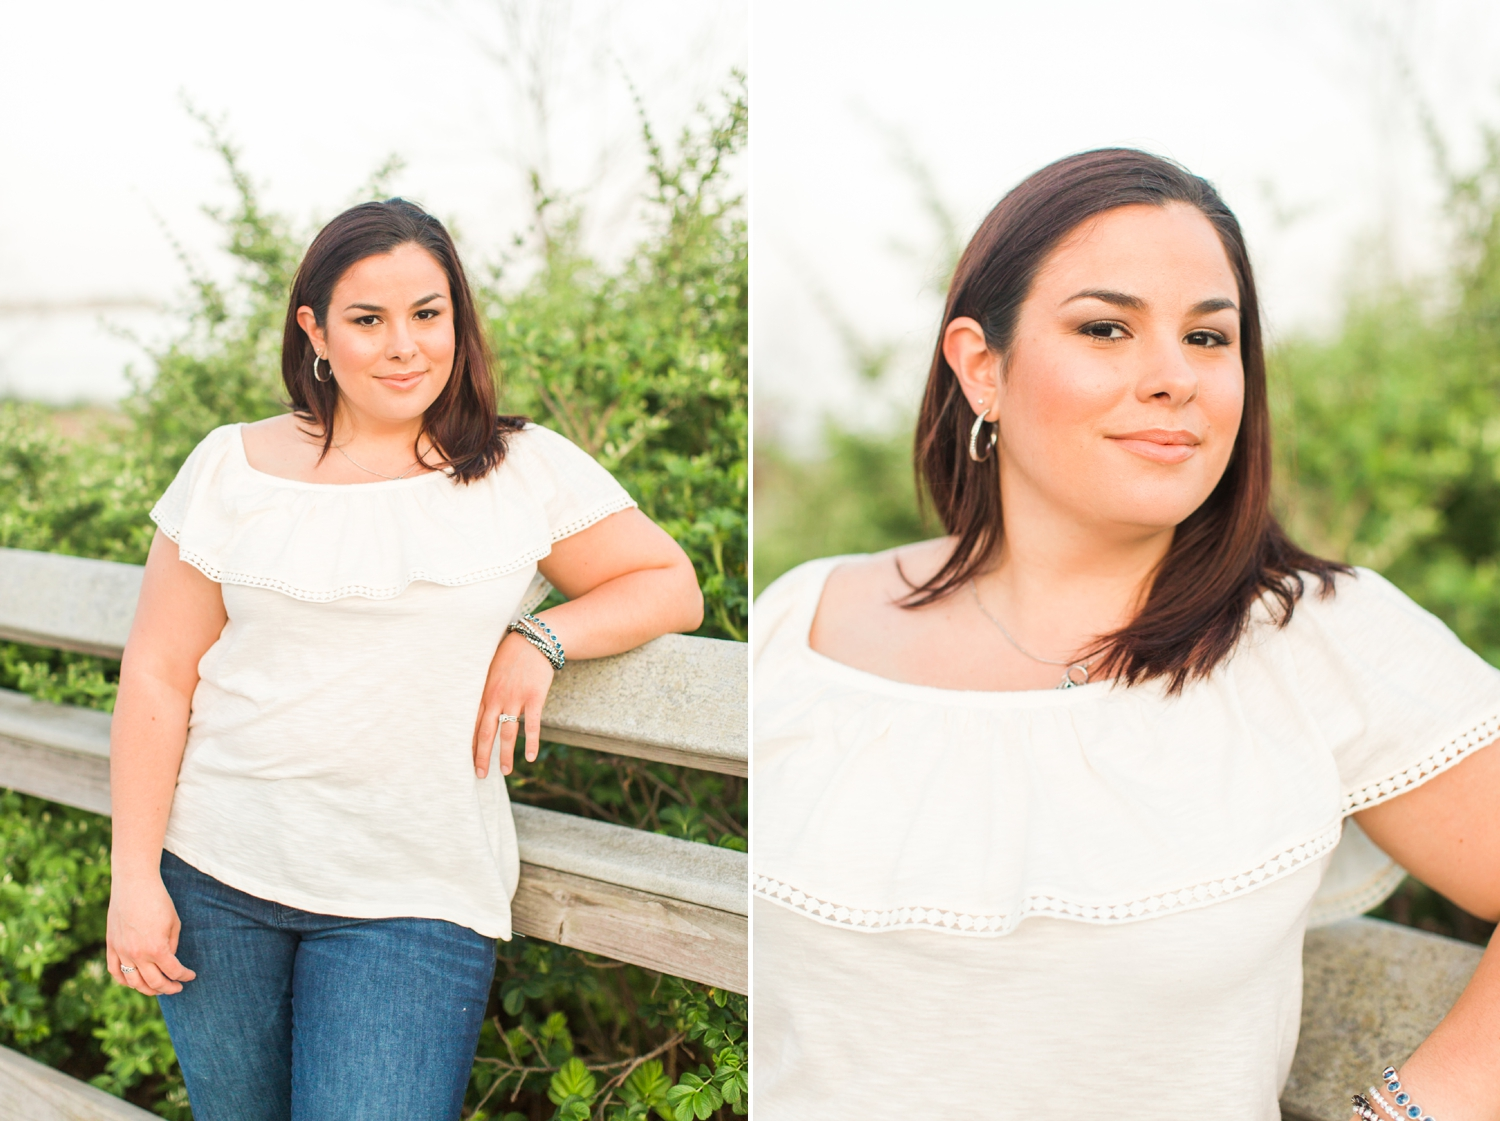 walnut-beach-lifestyle-headshots-milford-connecticut-new-york-wedding-engagement-photographer-shaina-lee-photography-photo